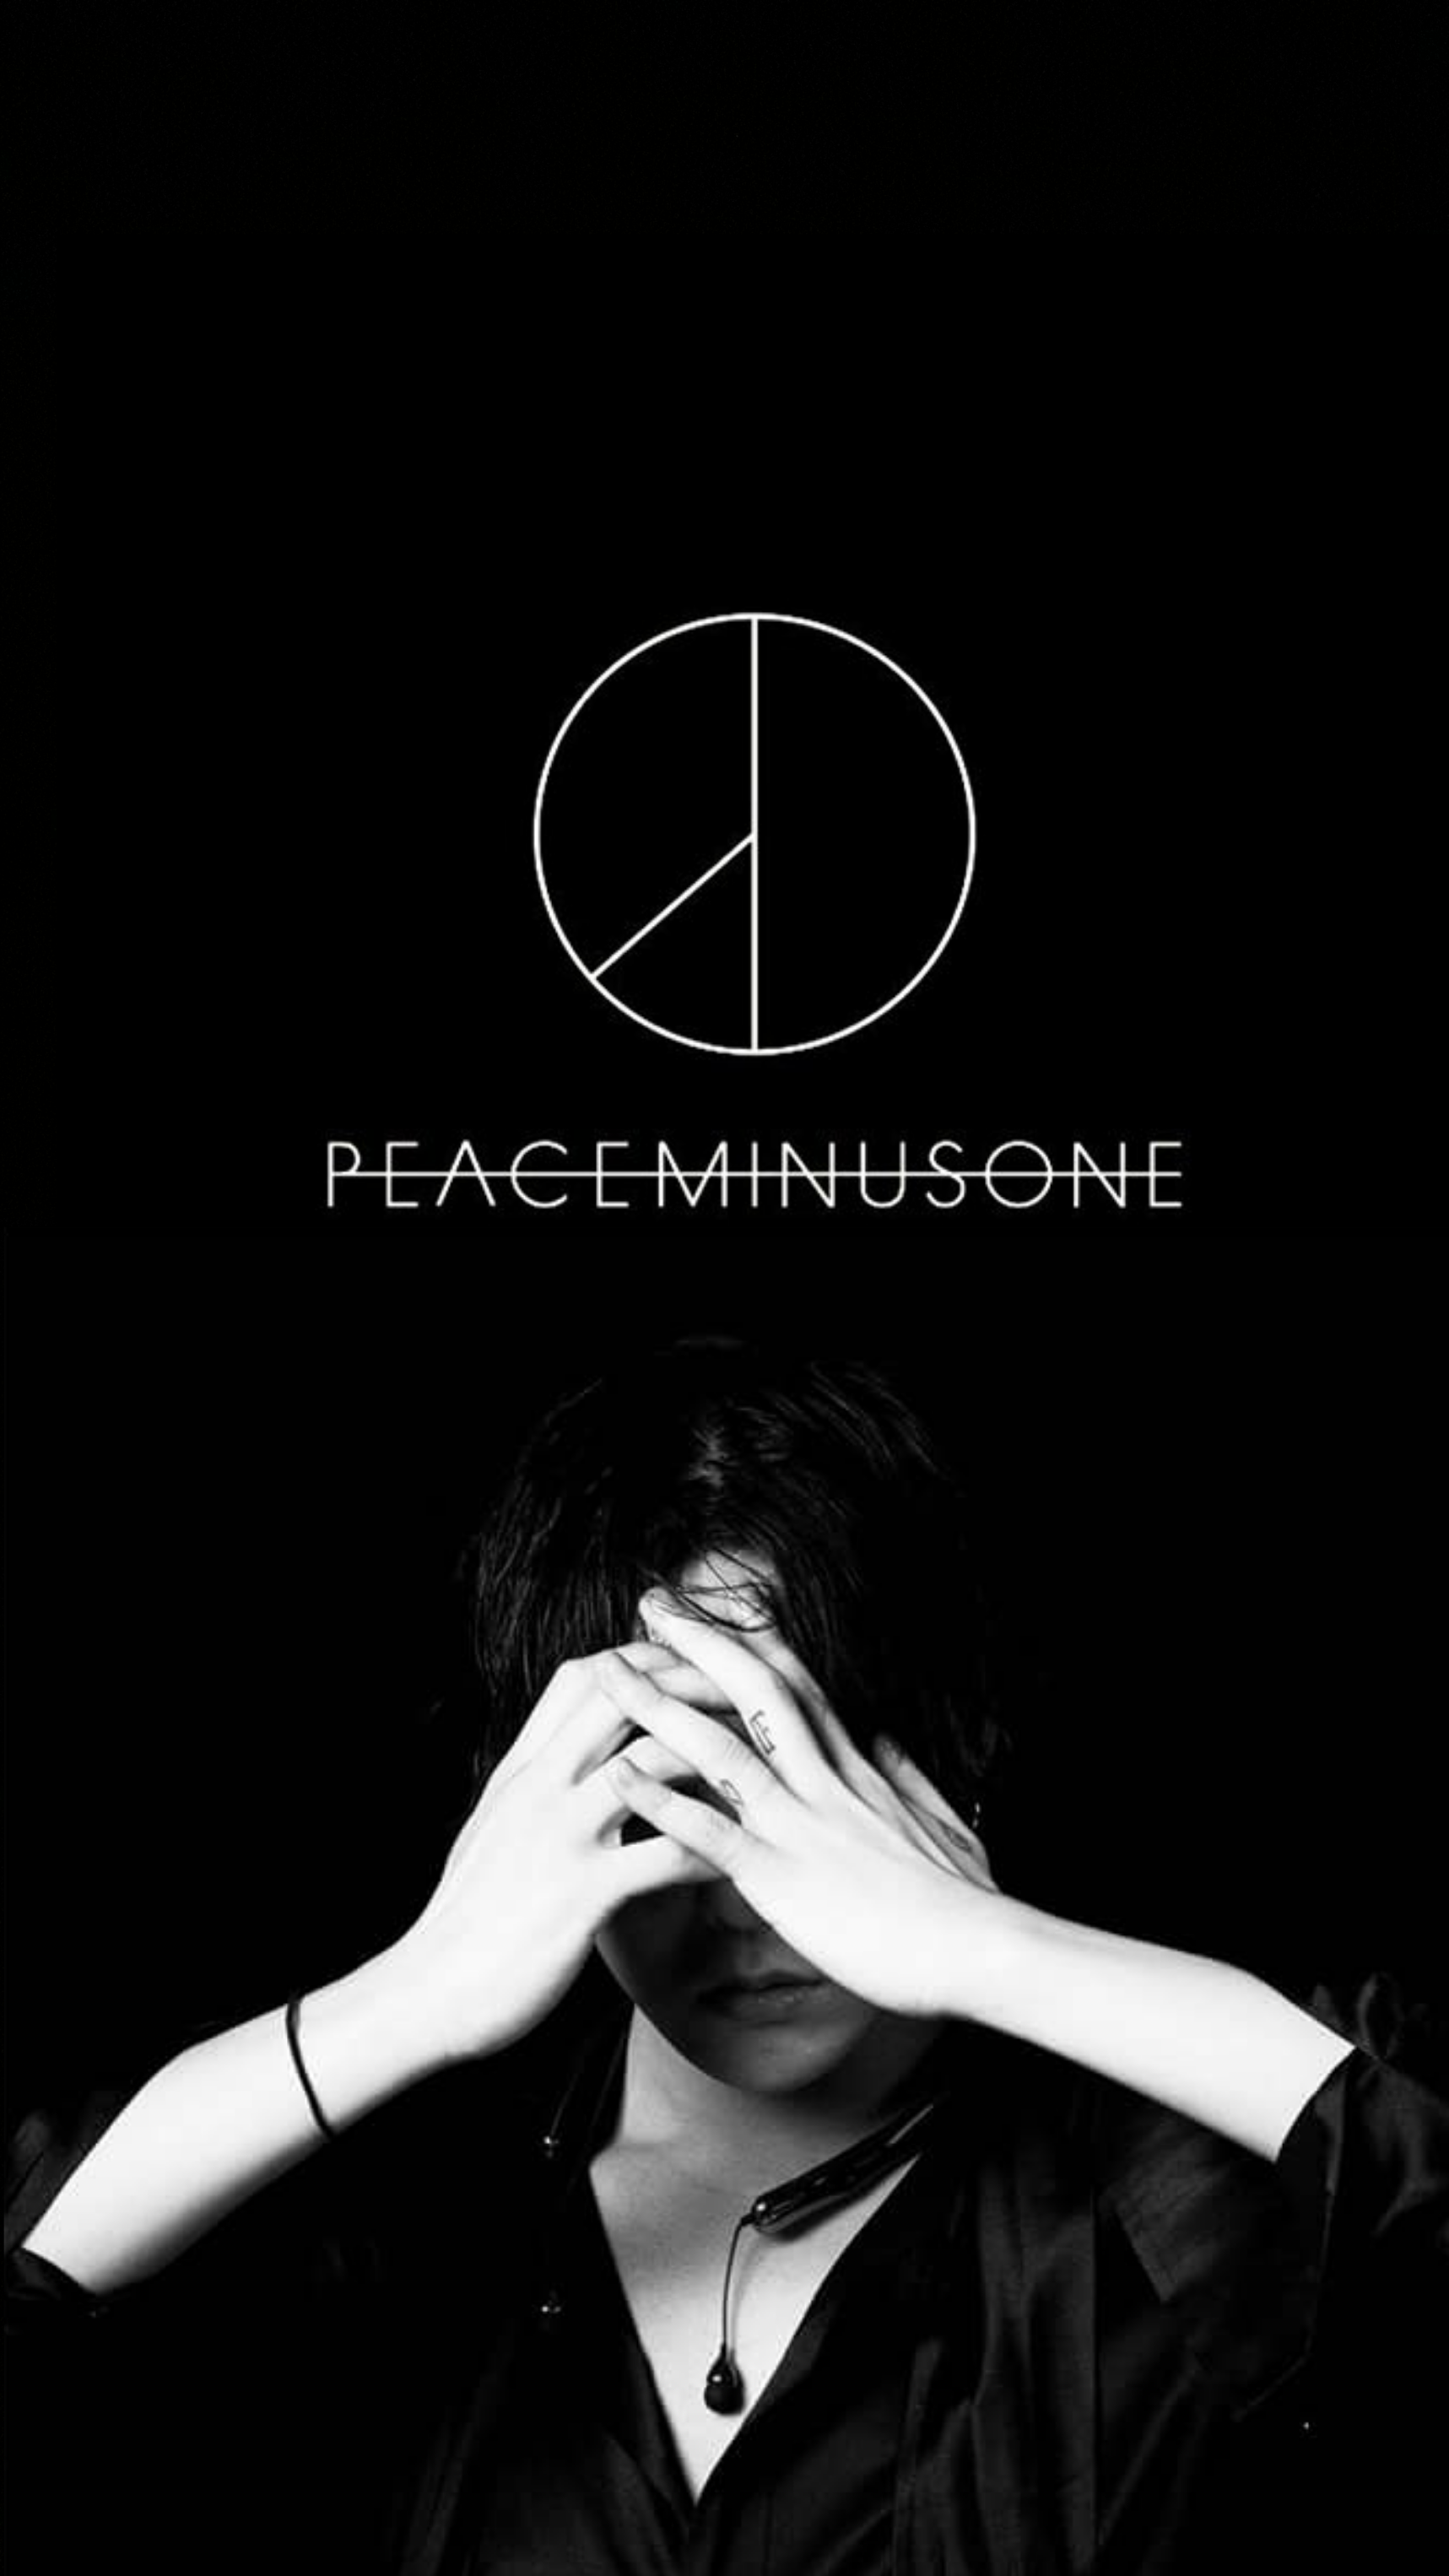 peaceminusone gdragon image by jz